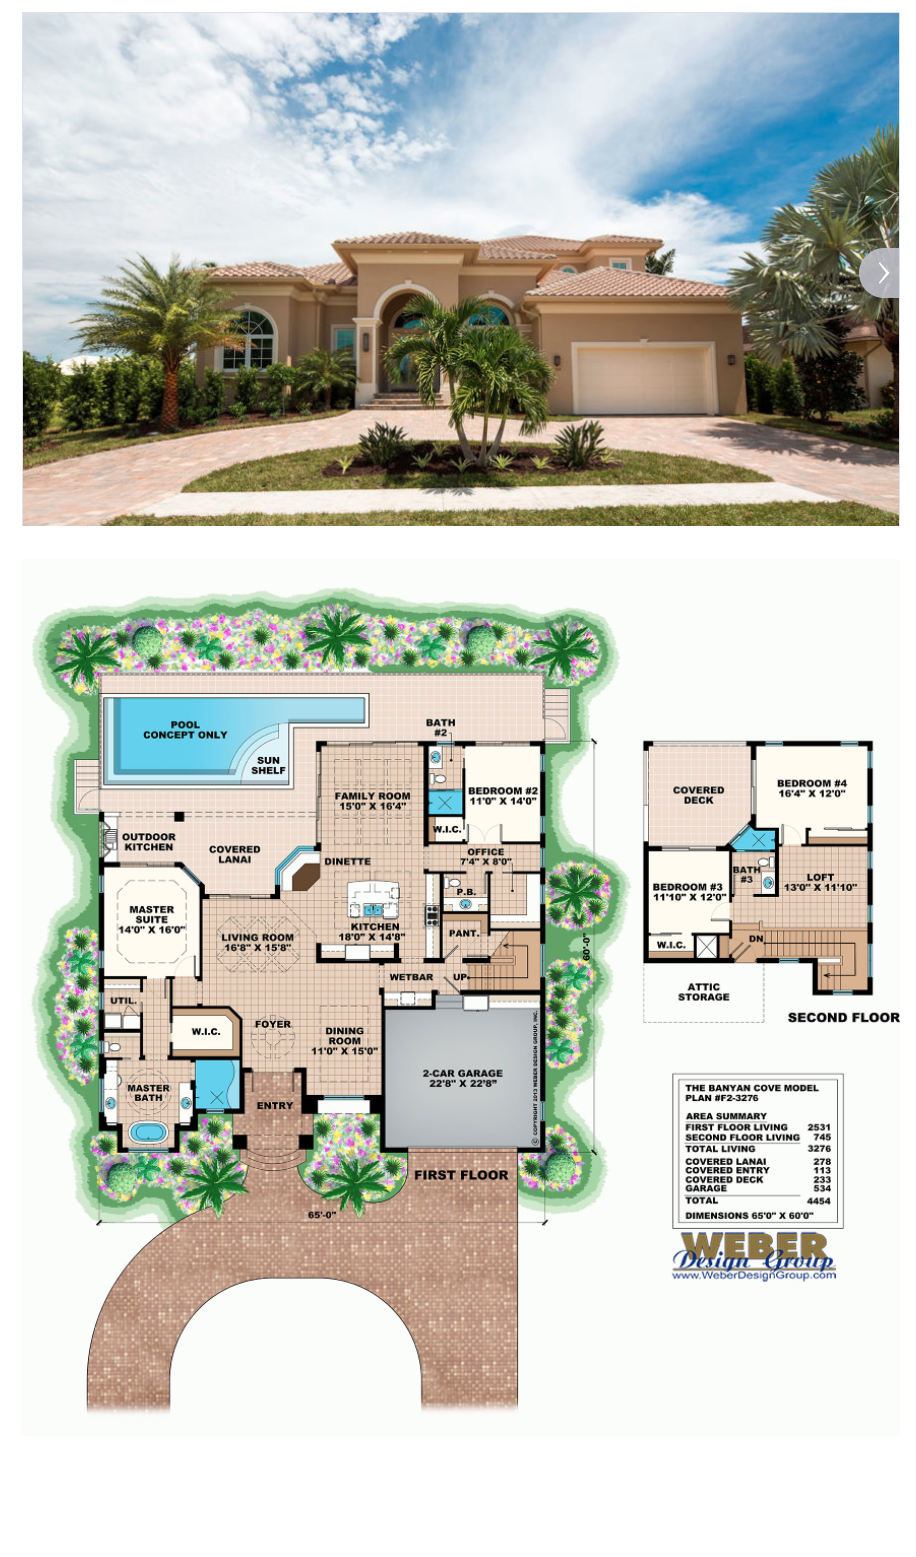 Mediterranean House Plan 2 Story Modern Beach Home Floor Plan Two Story House Plans Beach House Plans Mediterranean House Plans